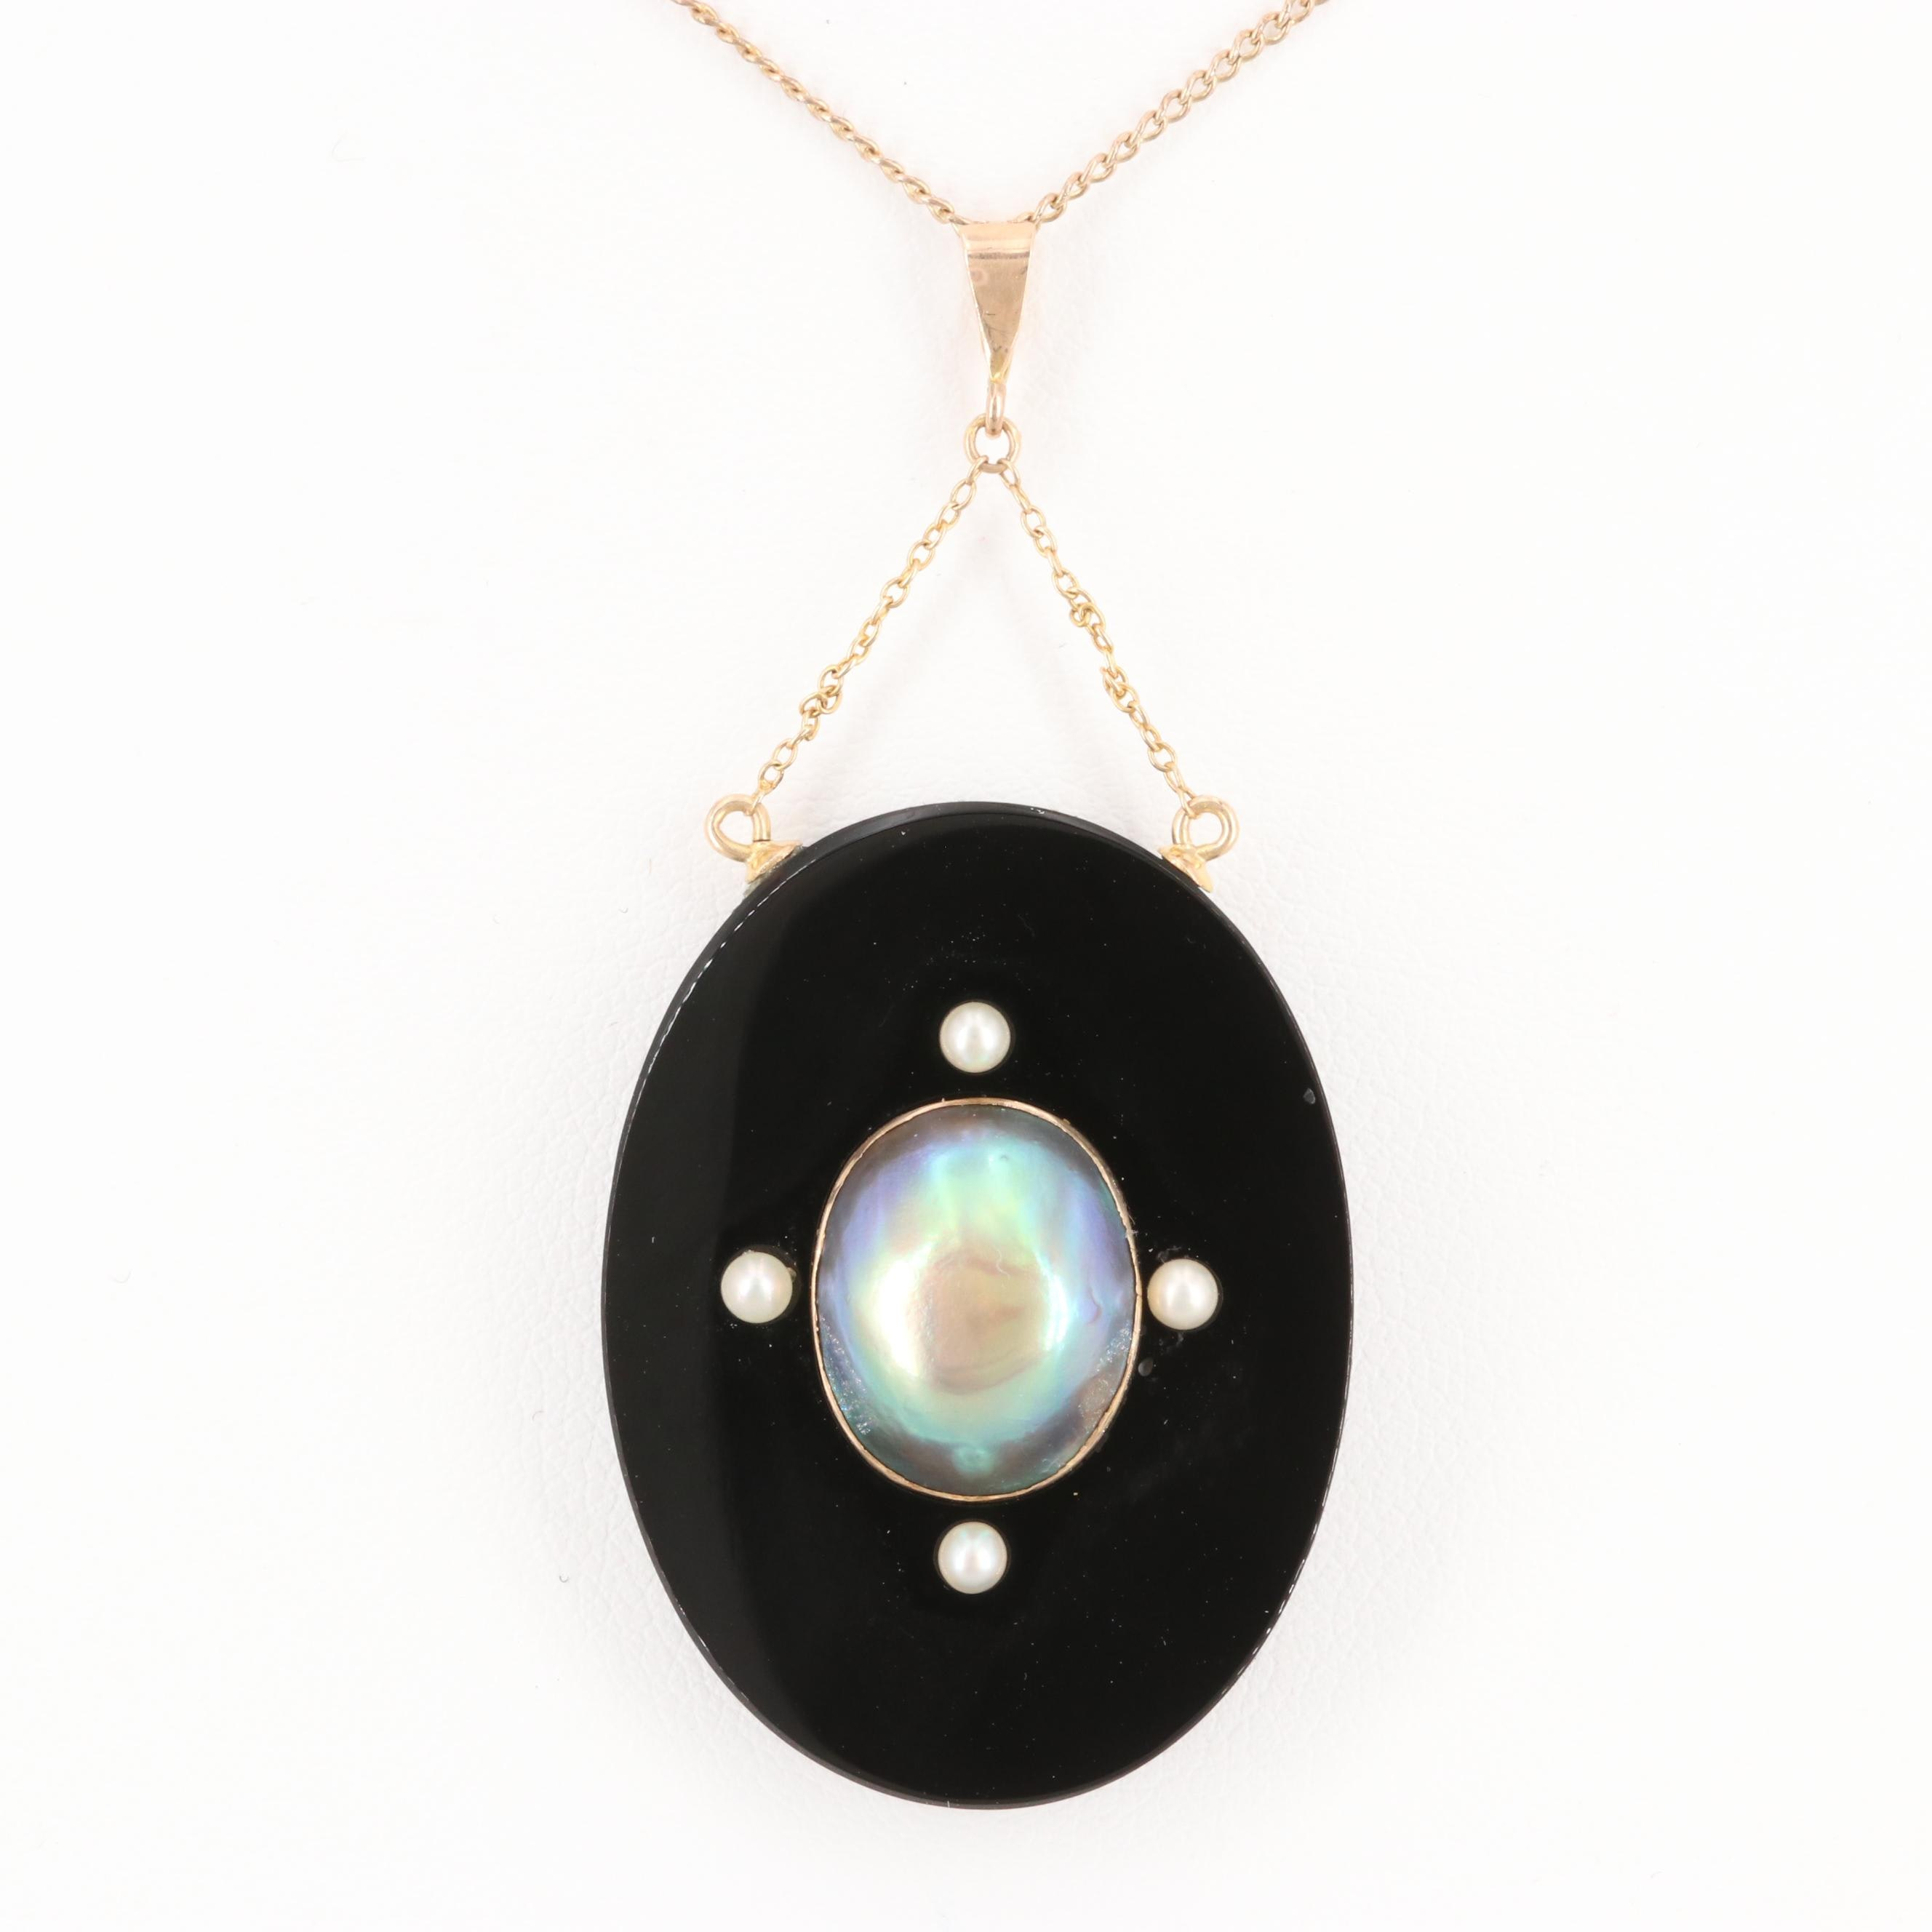 14K Yellow Gold Black Onyx, Cultured and Seed Pearl Pendant on Gold Tone Chain